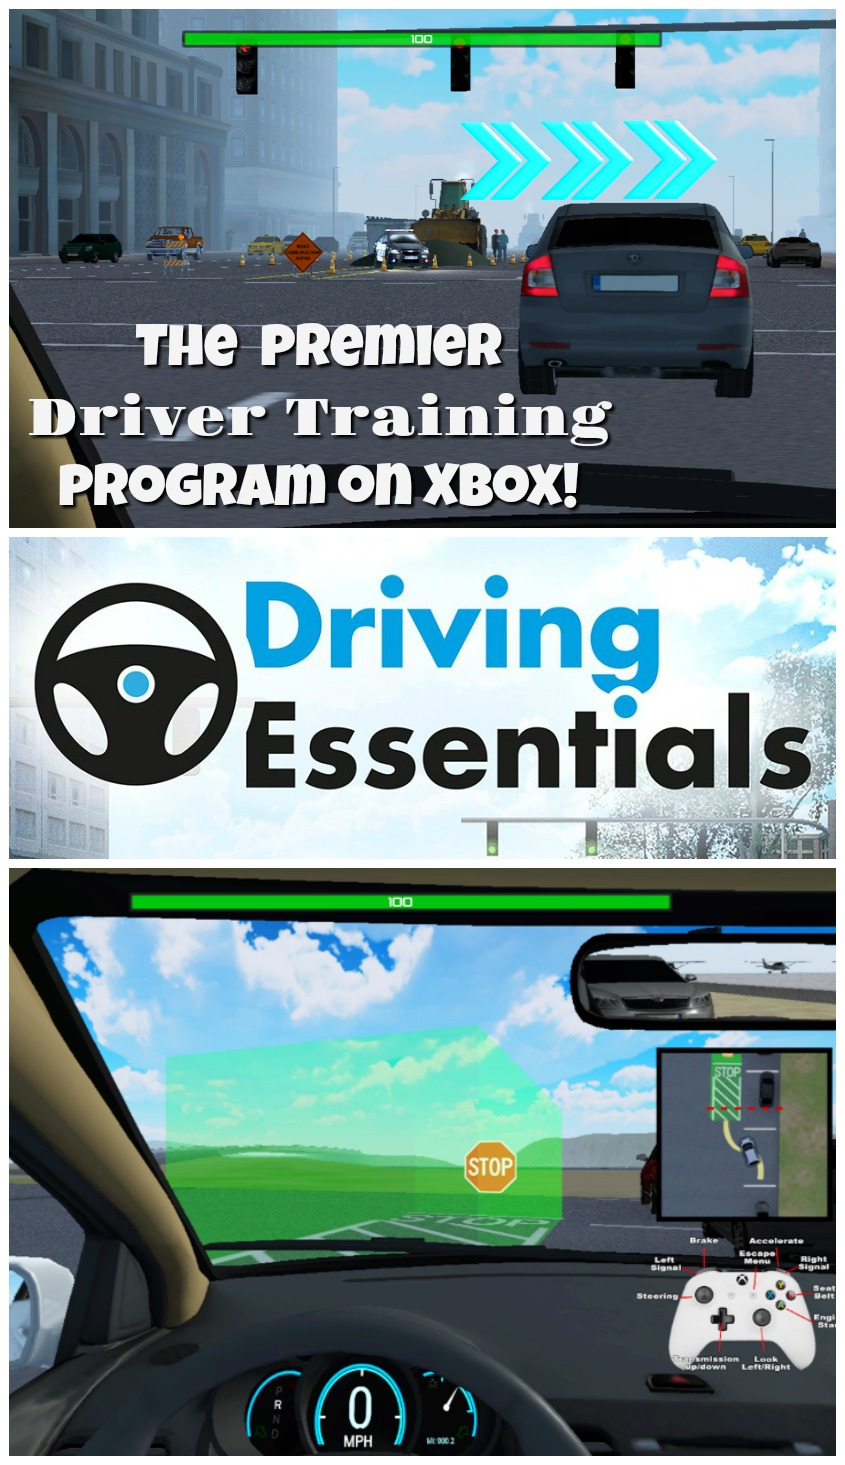 Driving Essentials XE, The Perfect Driver Training Program for Your Teen on Xbox! #driving #teens #parenting #learningtodrive